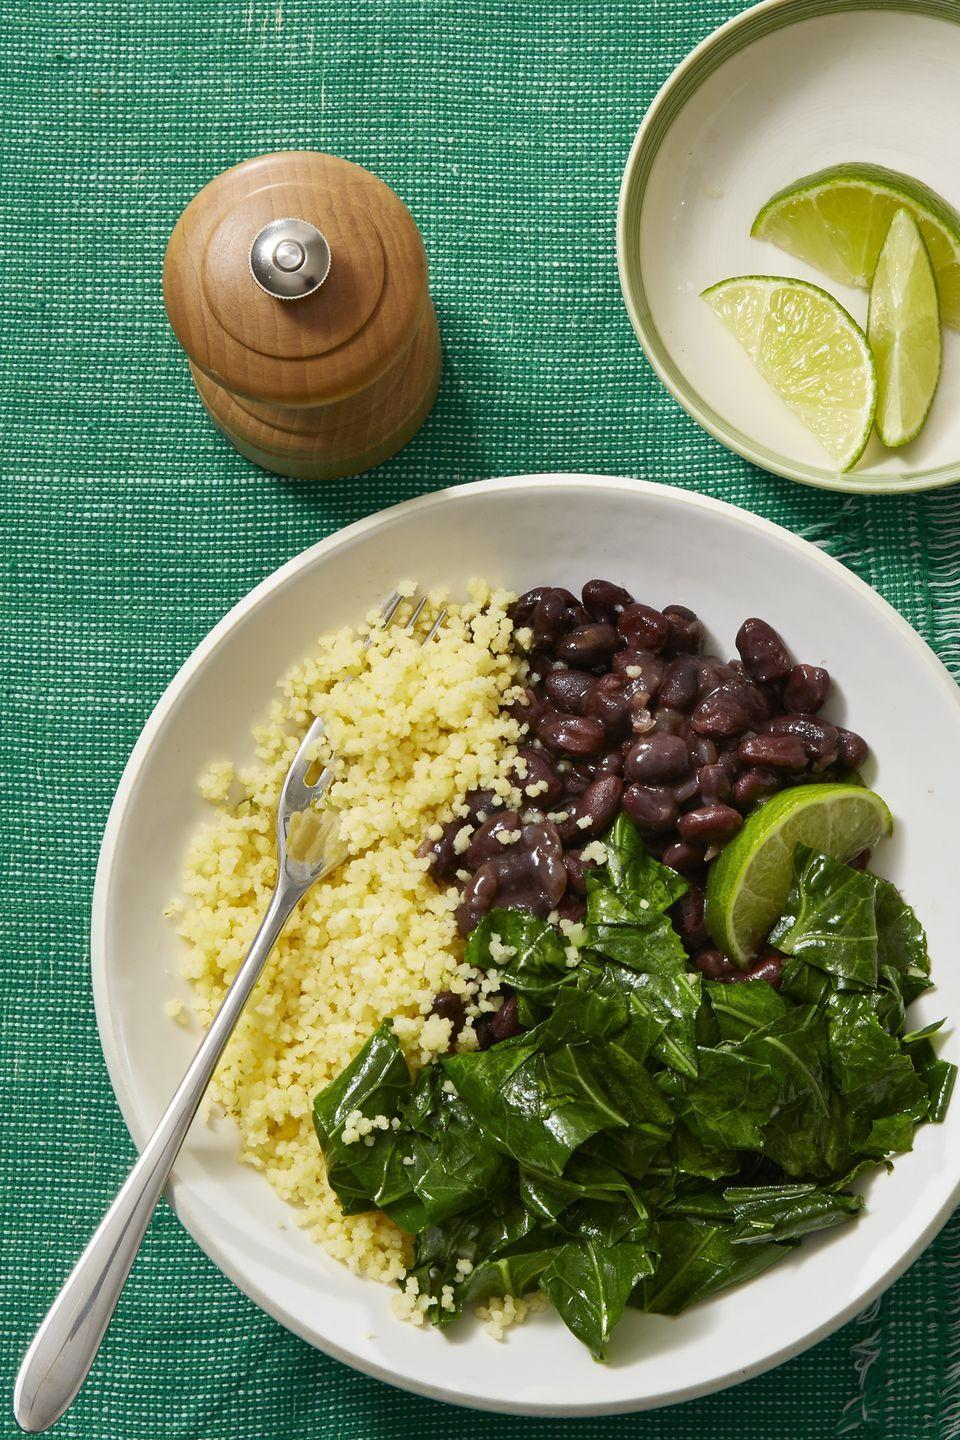 """<p>Beans and greens are the one of the tastiest ways to get your daily nutrient fix. </p><p><em><a href=""""https://www.womansday.com/food-recipes/food-drinks/recipes/a60707/stewed-black-beans-with-collared-greens-recipe/"""" rel=""""nofollow noopener"""" target=""""_blank"""" data-ylk=""""slk:Get the Stewed Black Beans and Collared Greens recipe."""" class=""""link rapid-noclick-resp"""">Get the Stewed Black Beans and Collared Greens recipe.</a></em></p>"""